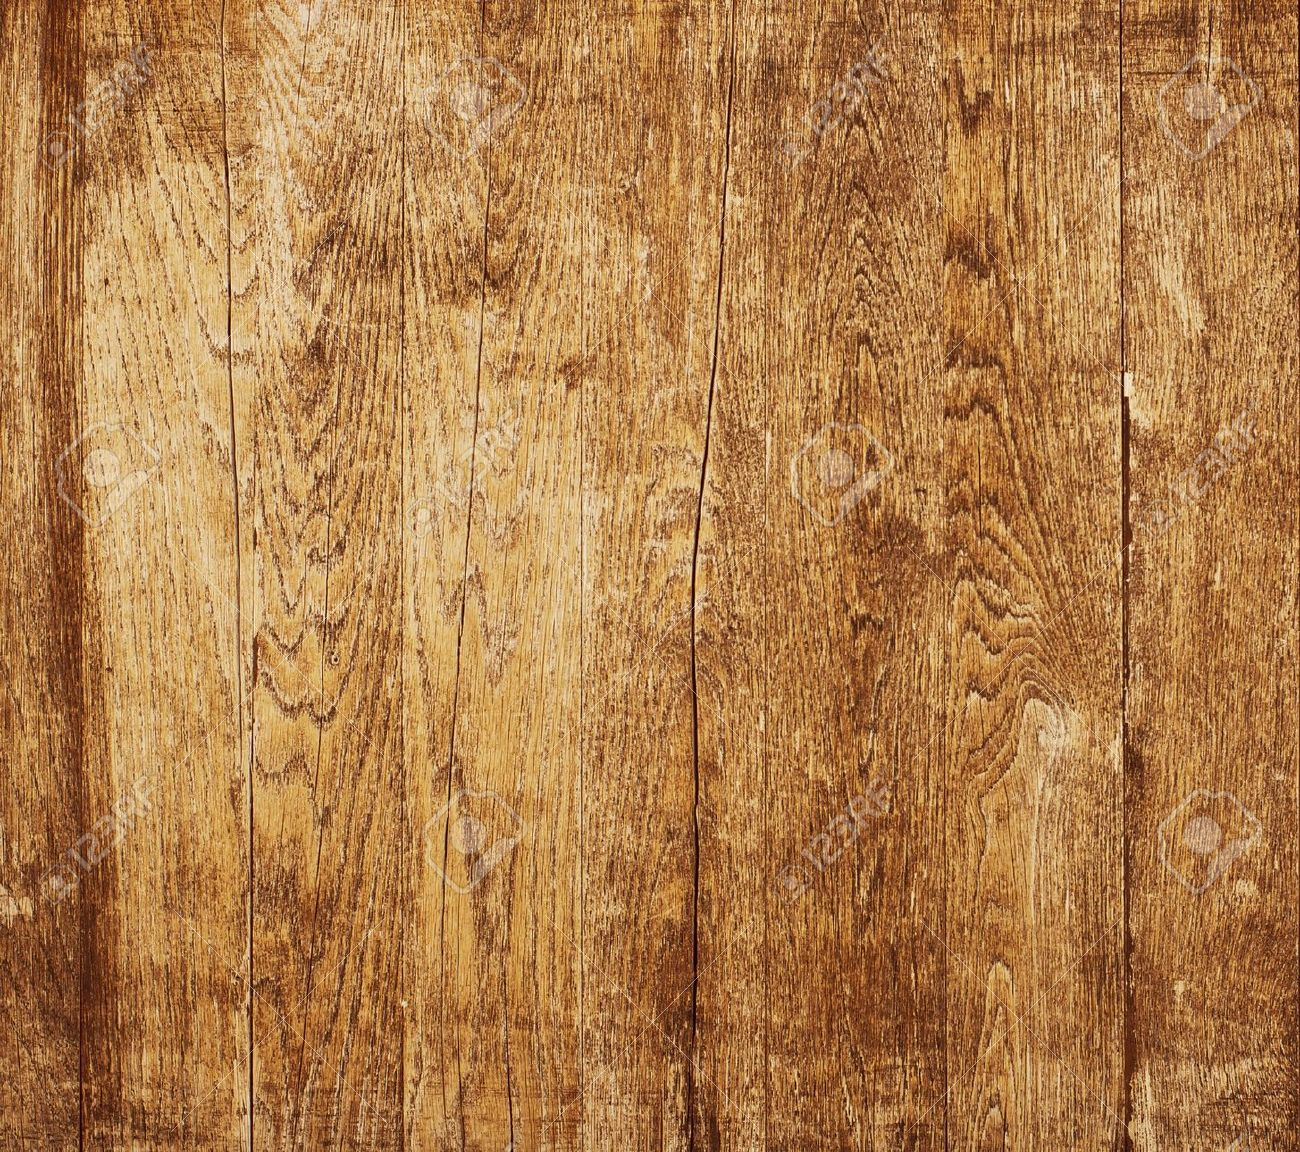 12292787-Vintage-wood-old-retro-texture-Stock-Photo-background